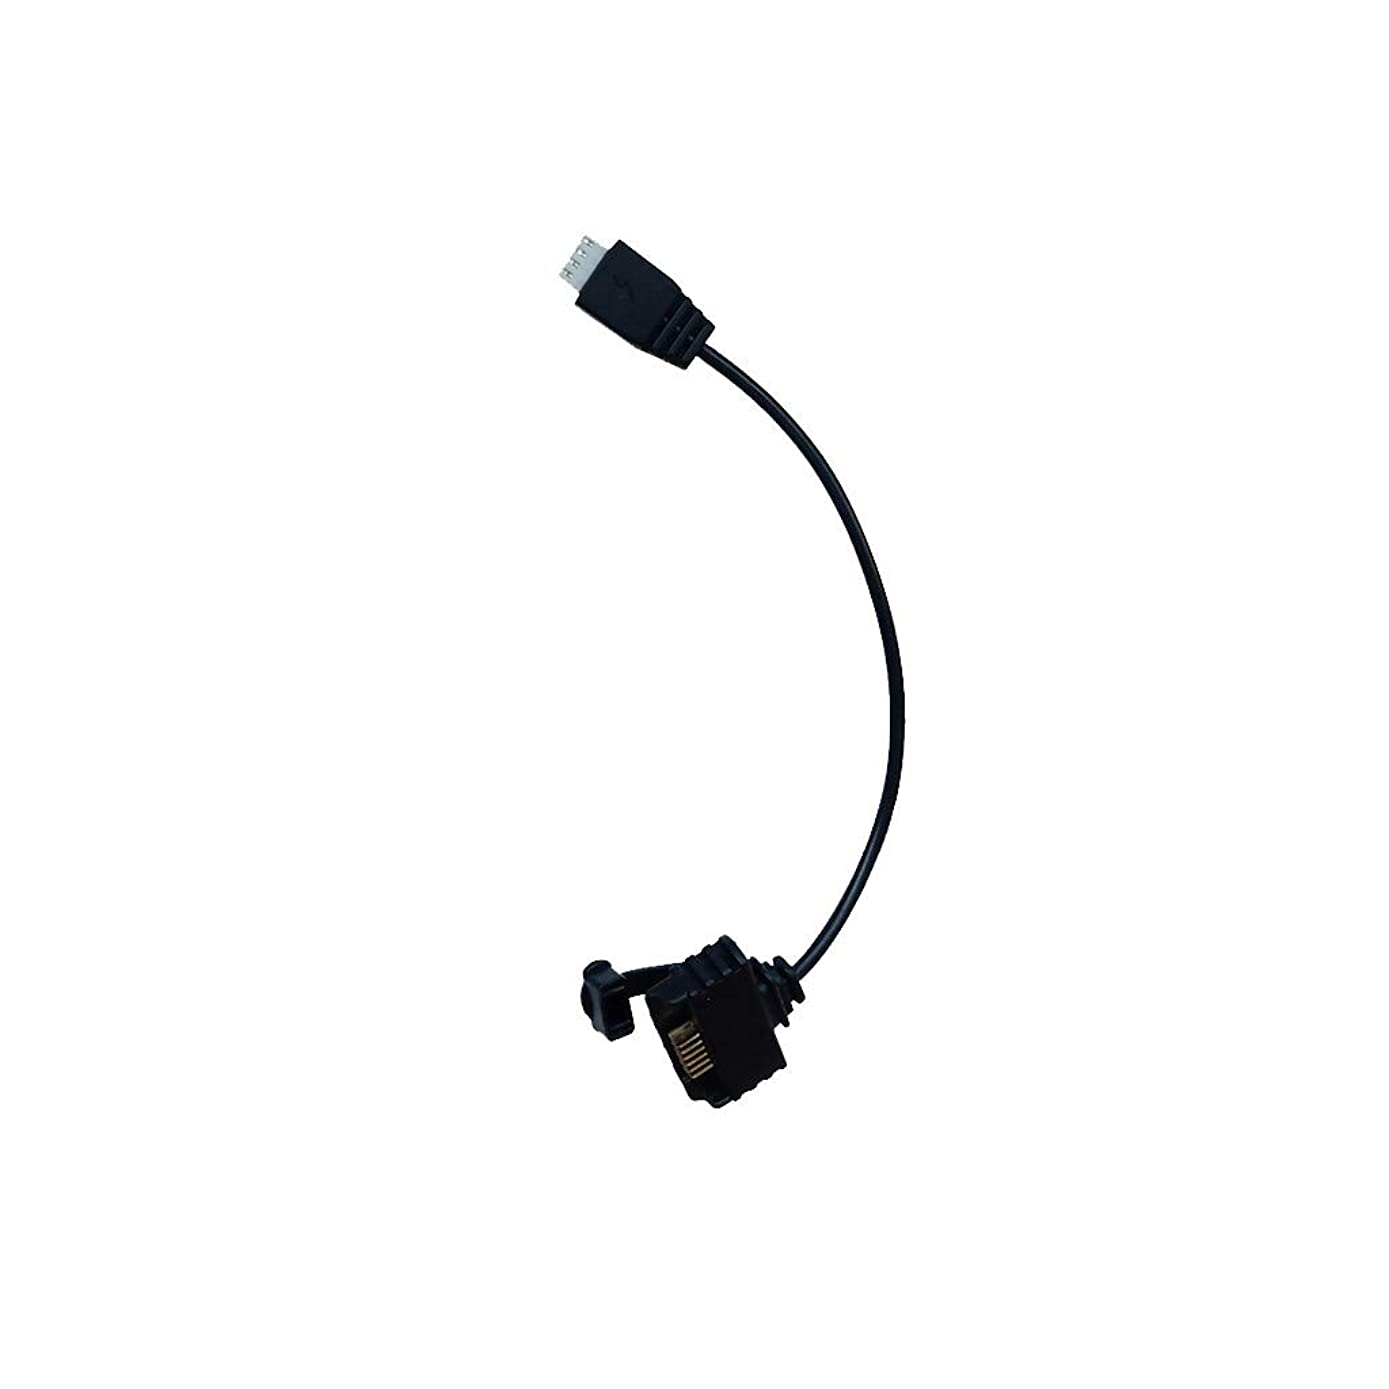 Ktyssp Professional Hubsan Zino H117S RC Drone Quadcopter Spare Parts Battery Connected Cable Wire